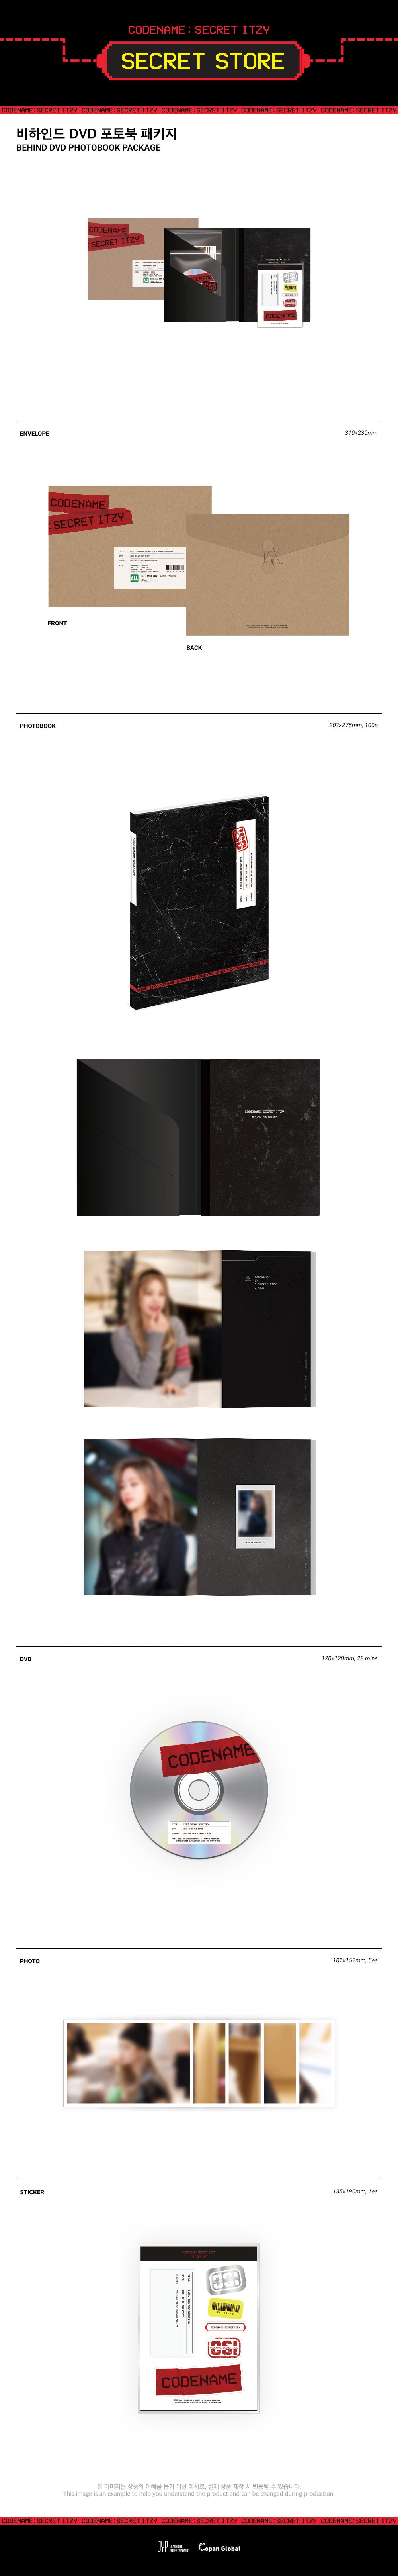 ITZY - CODENAME - SECRET ITZY BEHIND DVD PHOTOBOOK PACKAGE Infographic